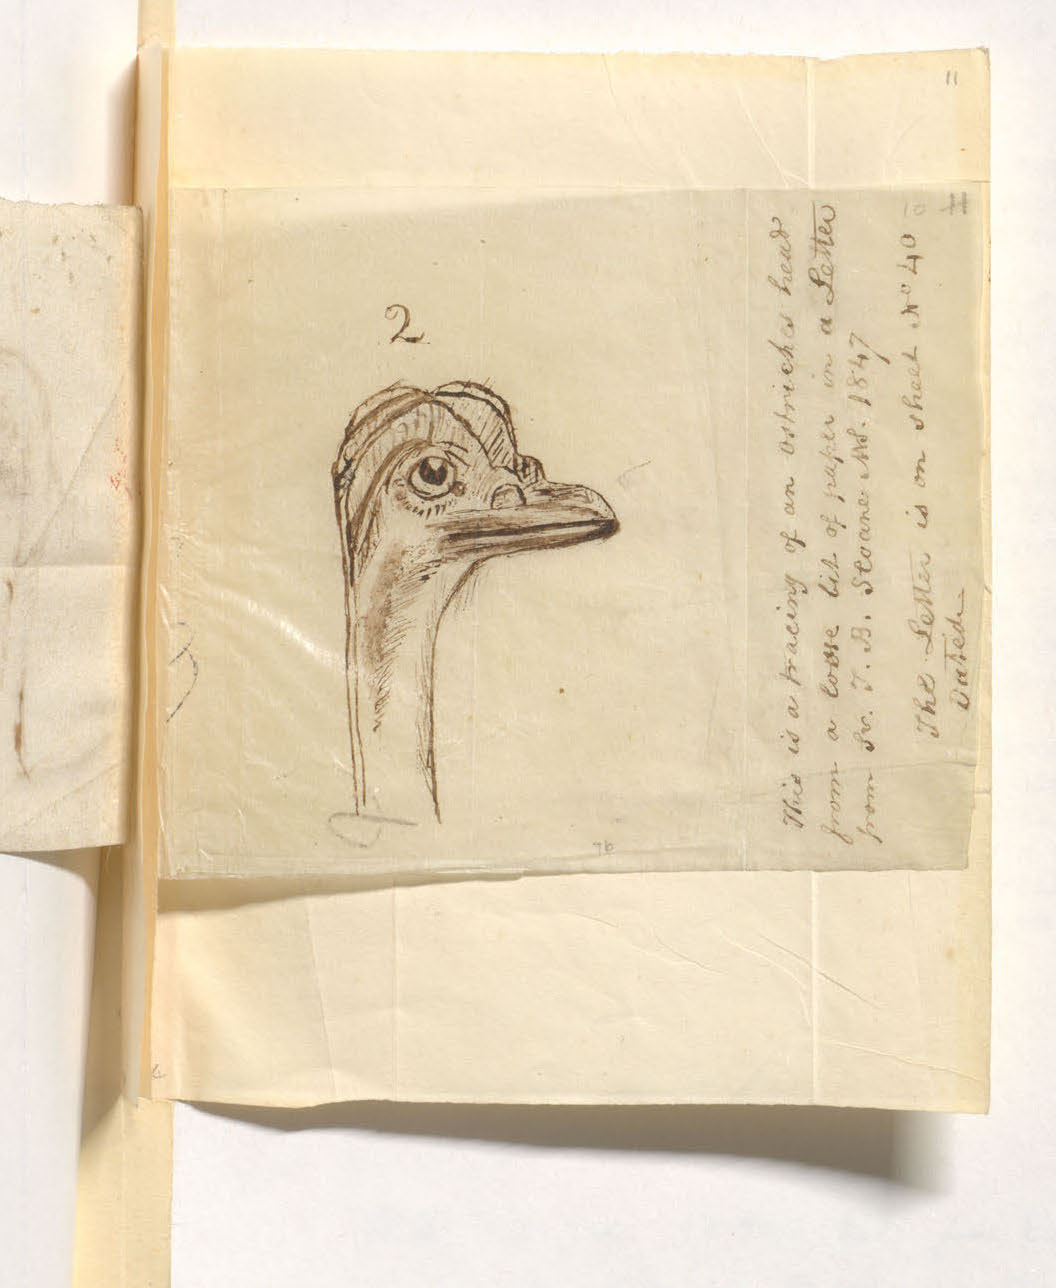 Page 41 Ostrich's head drawing. Thomas Browne, Sir. (ca.1659-1682.) Manuscripts in English, on paper. Older Library of the History of Medicine niche. folio B884m 1659-1682